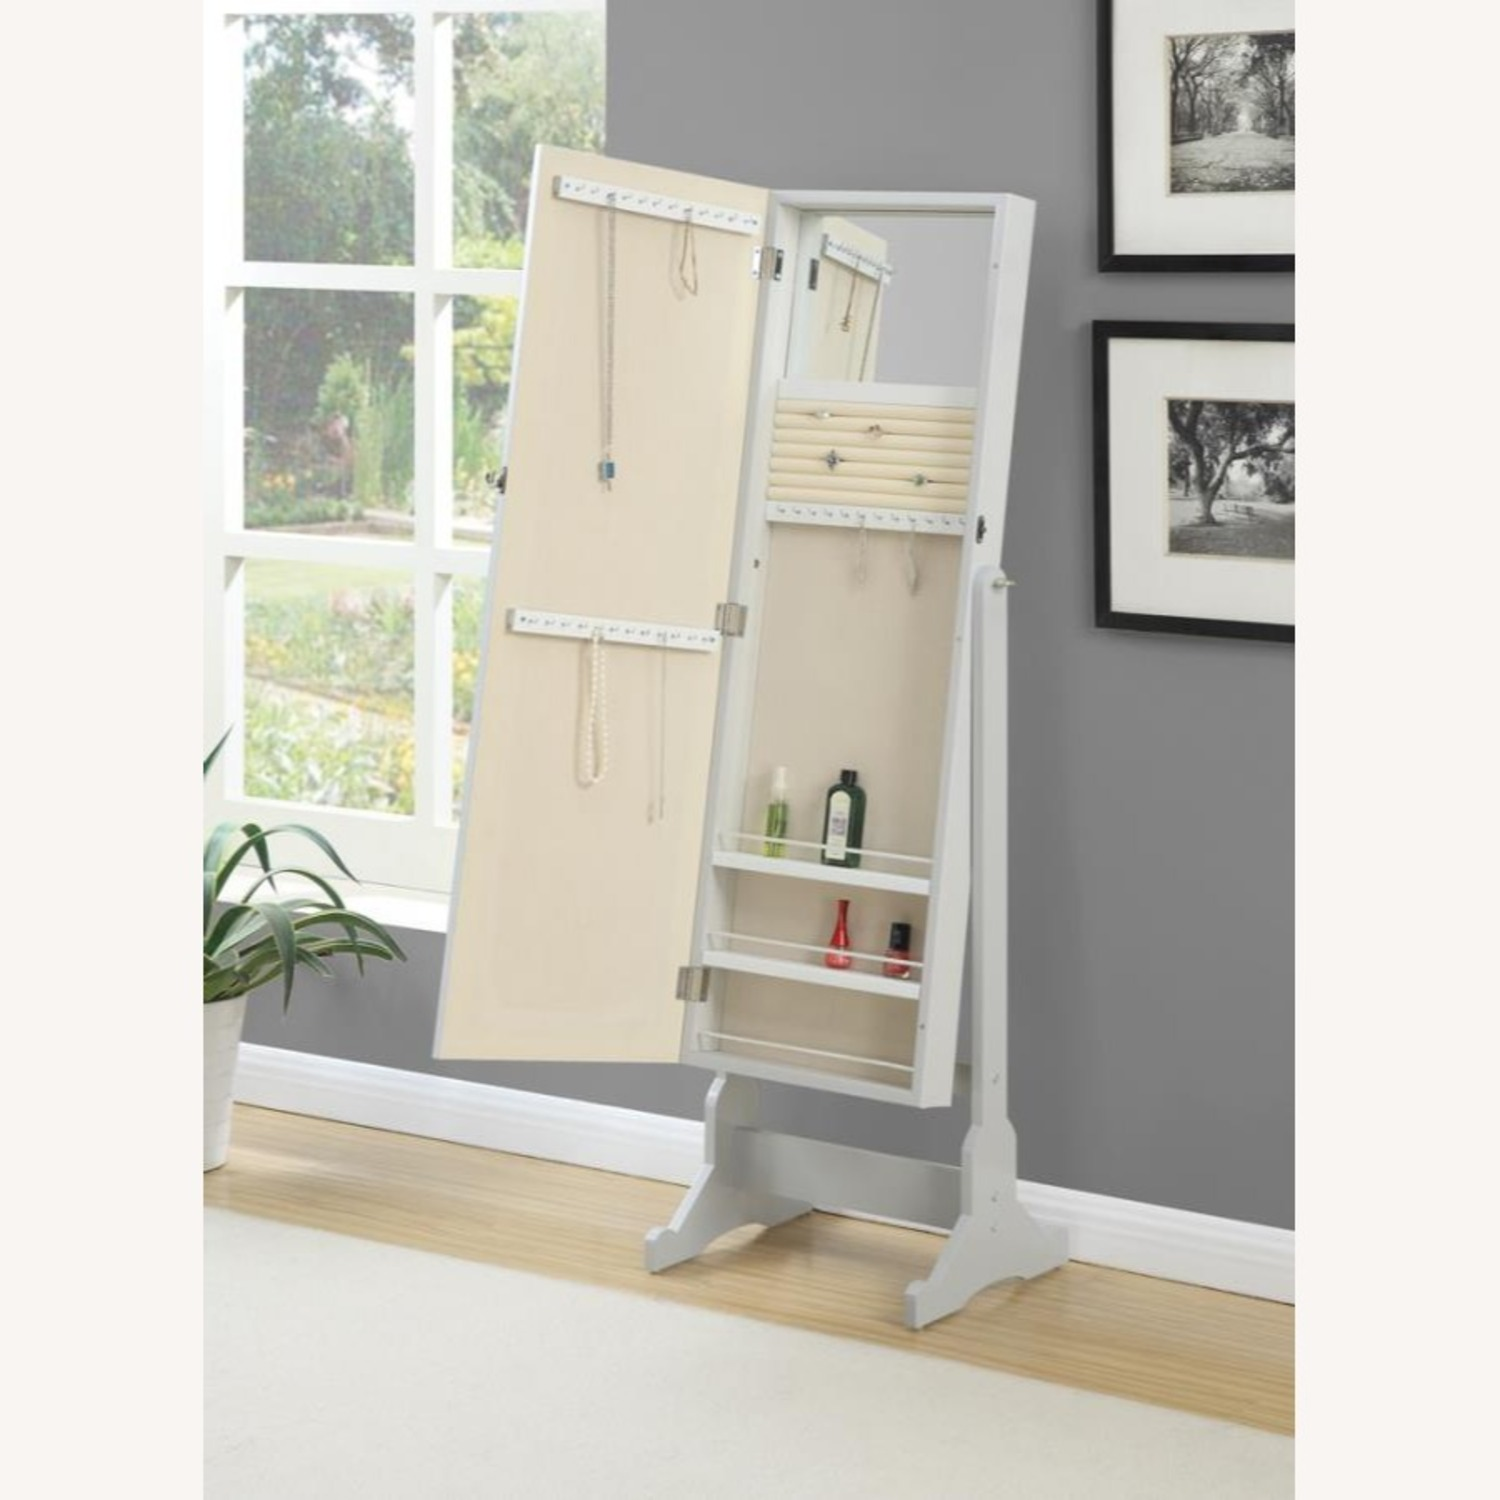 Tilting Jewelry Mirror In Dove Grey Finish - image-1